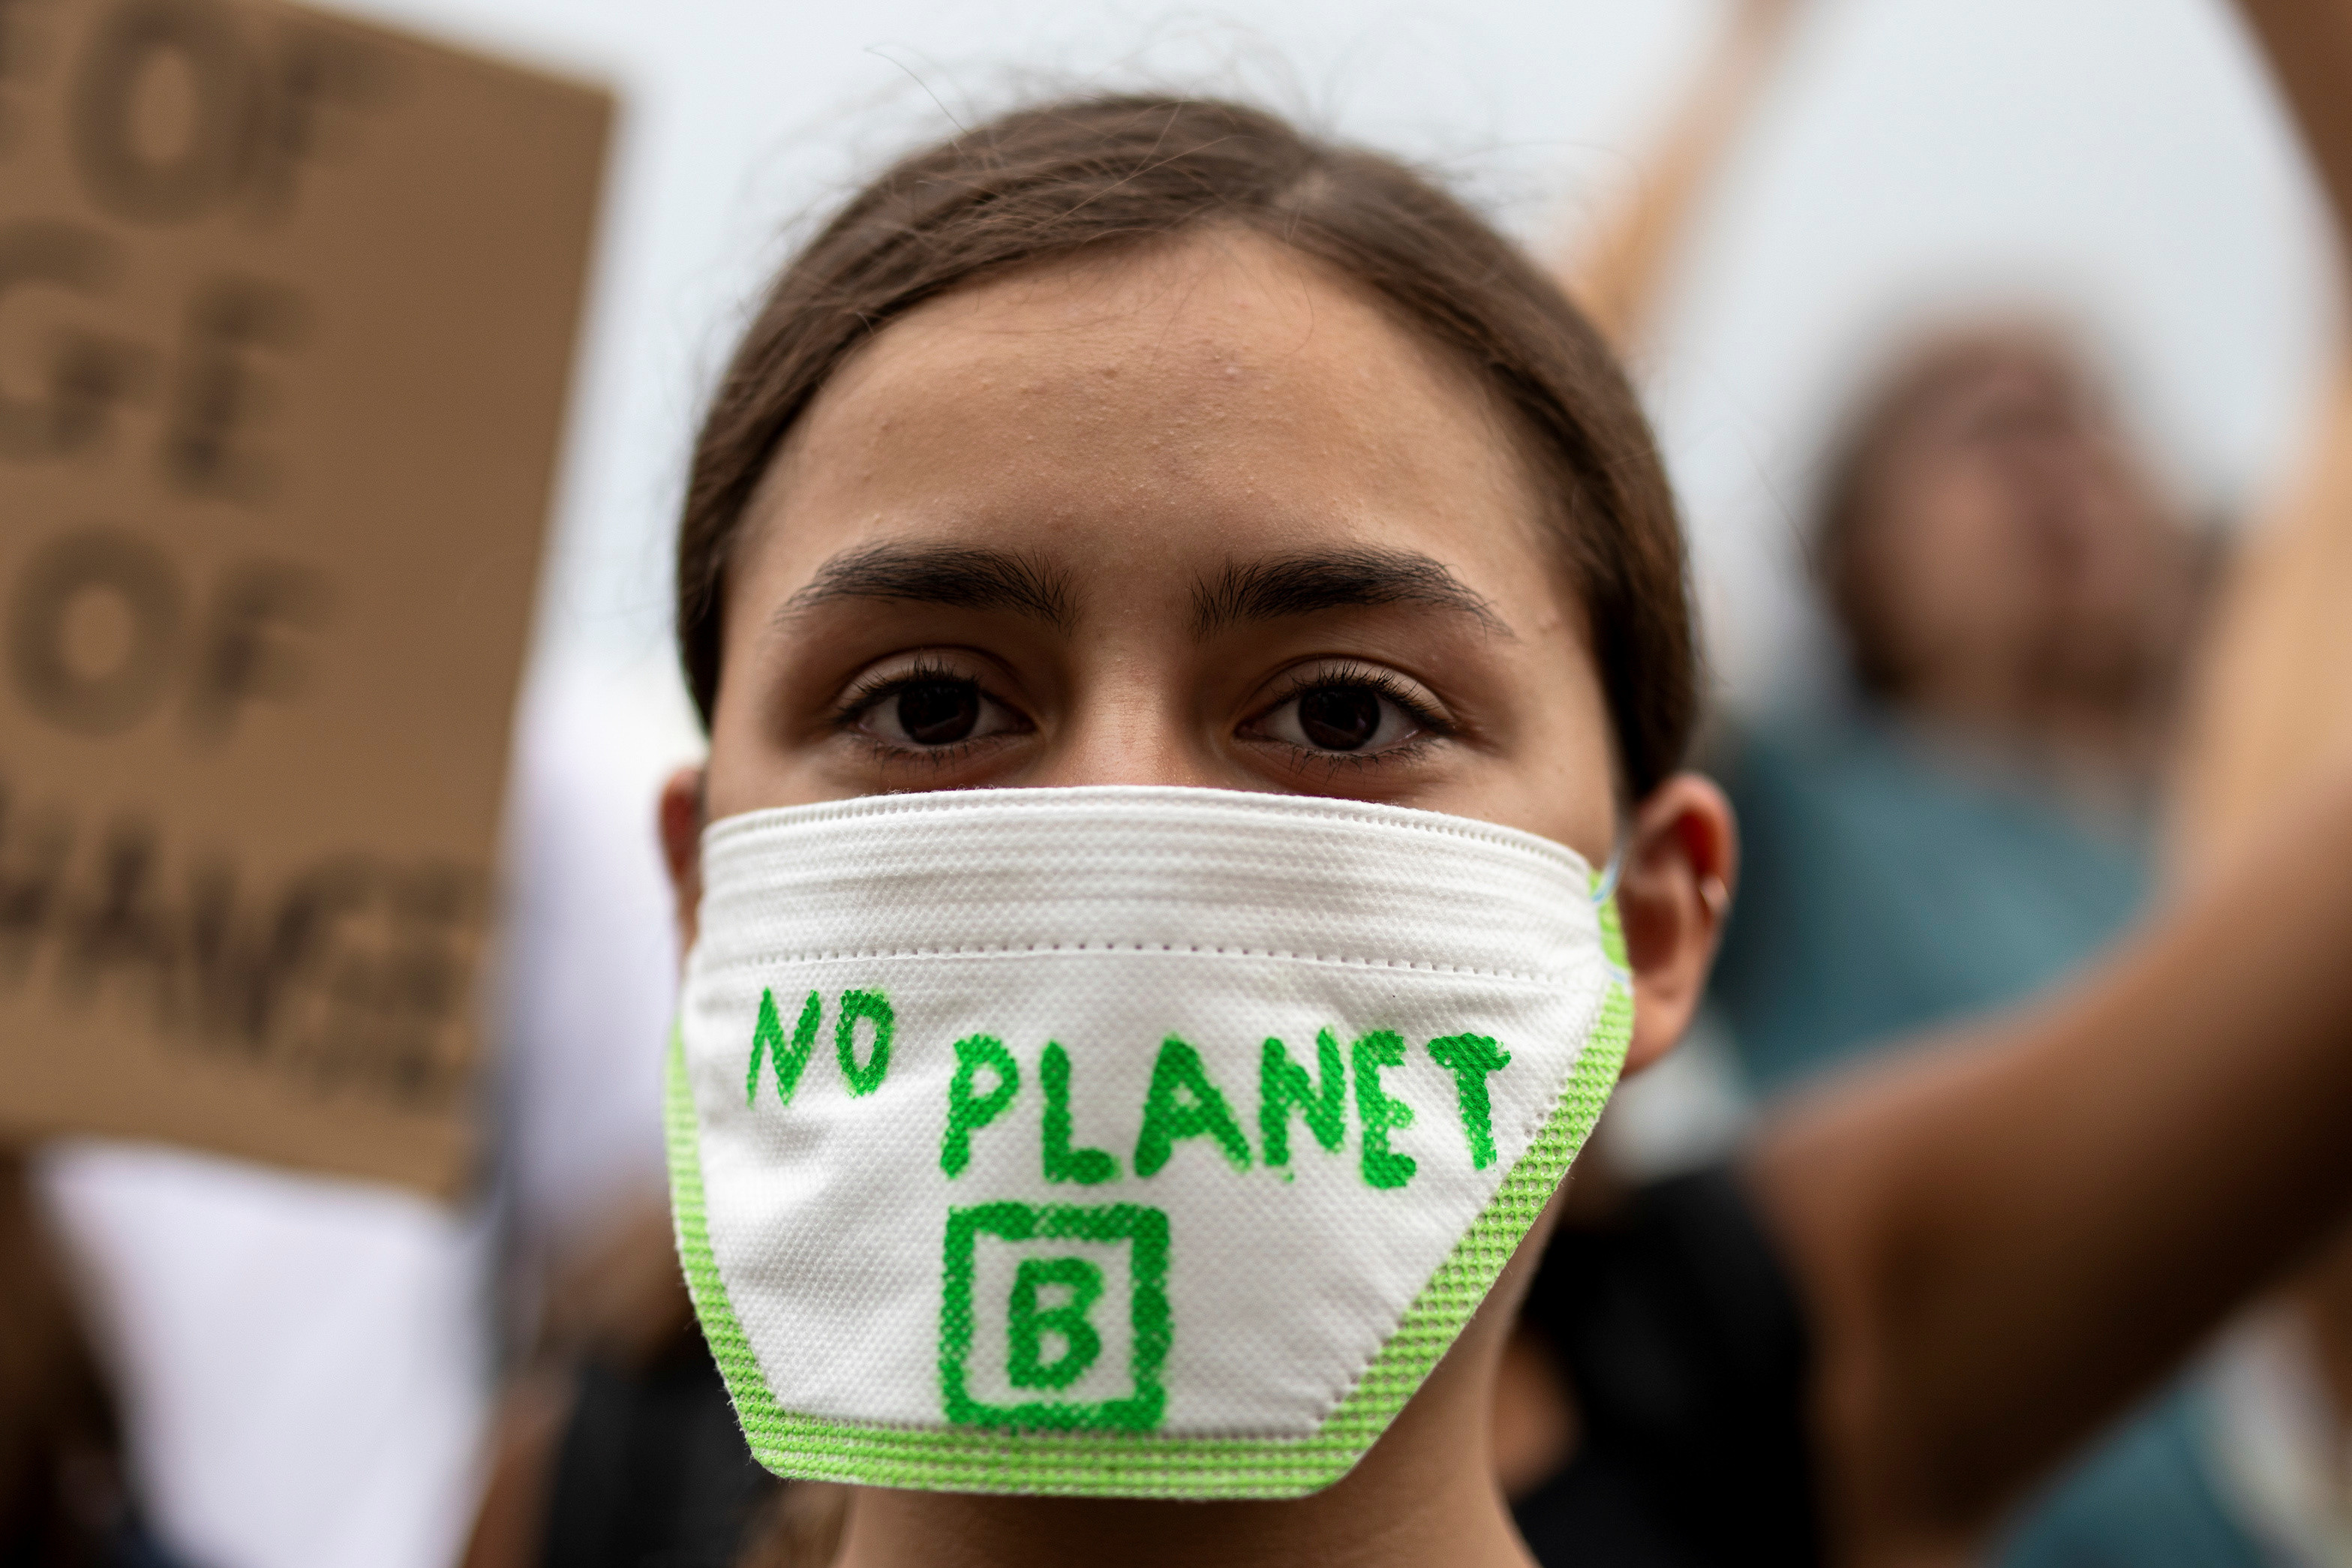 """A Greek student wears a mask reading """"No Planet B"""" during a Global Climate Strike rally of the movement Fridays for Future in Athens, Greece, September 20, 2019. REUTERS/Alkis Konstantinidis - RC1EA6CFACF0"""